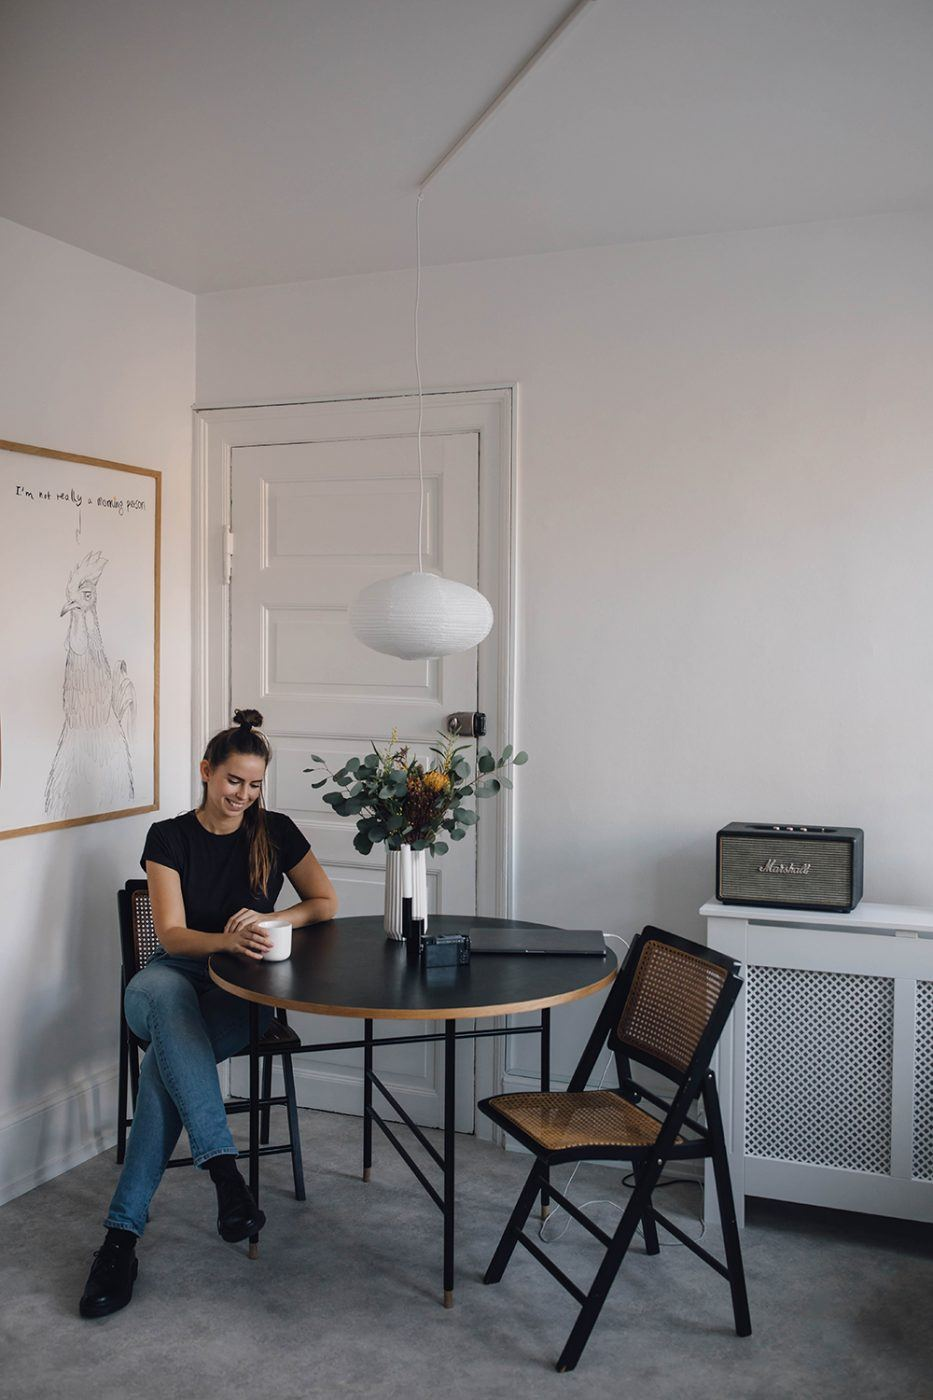 Home Tour With Line Borella In Copenhagen Our Food Stories